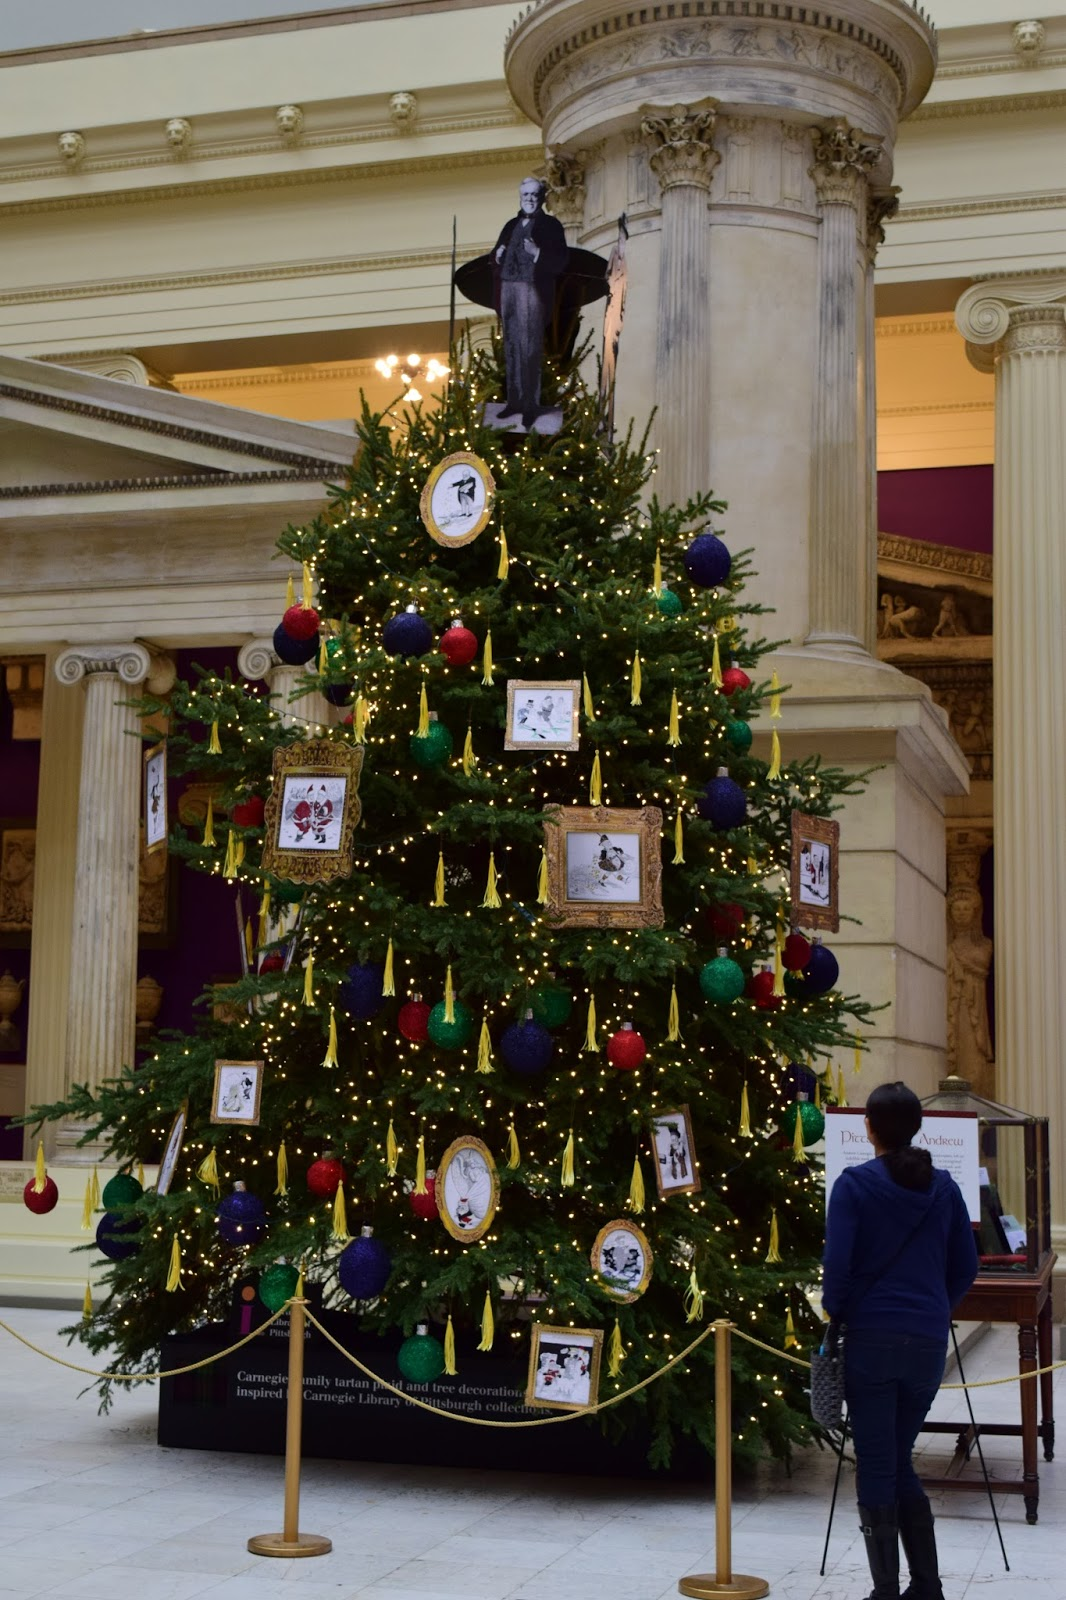 The Christmas Tree Salute To Pittsburghs Steel Tycoon And Philanthropist Carnegie Moved To Pittsburgh At The Age Of 13 Began Working In A Cotton Factory